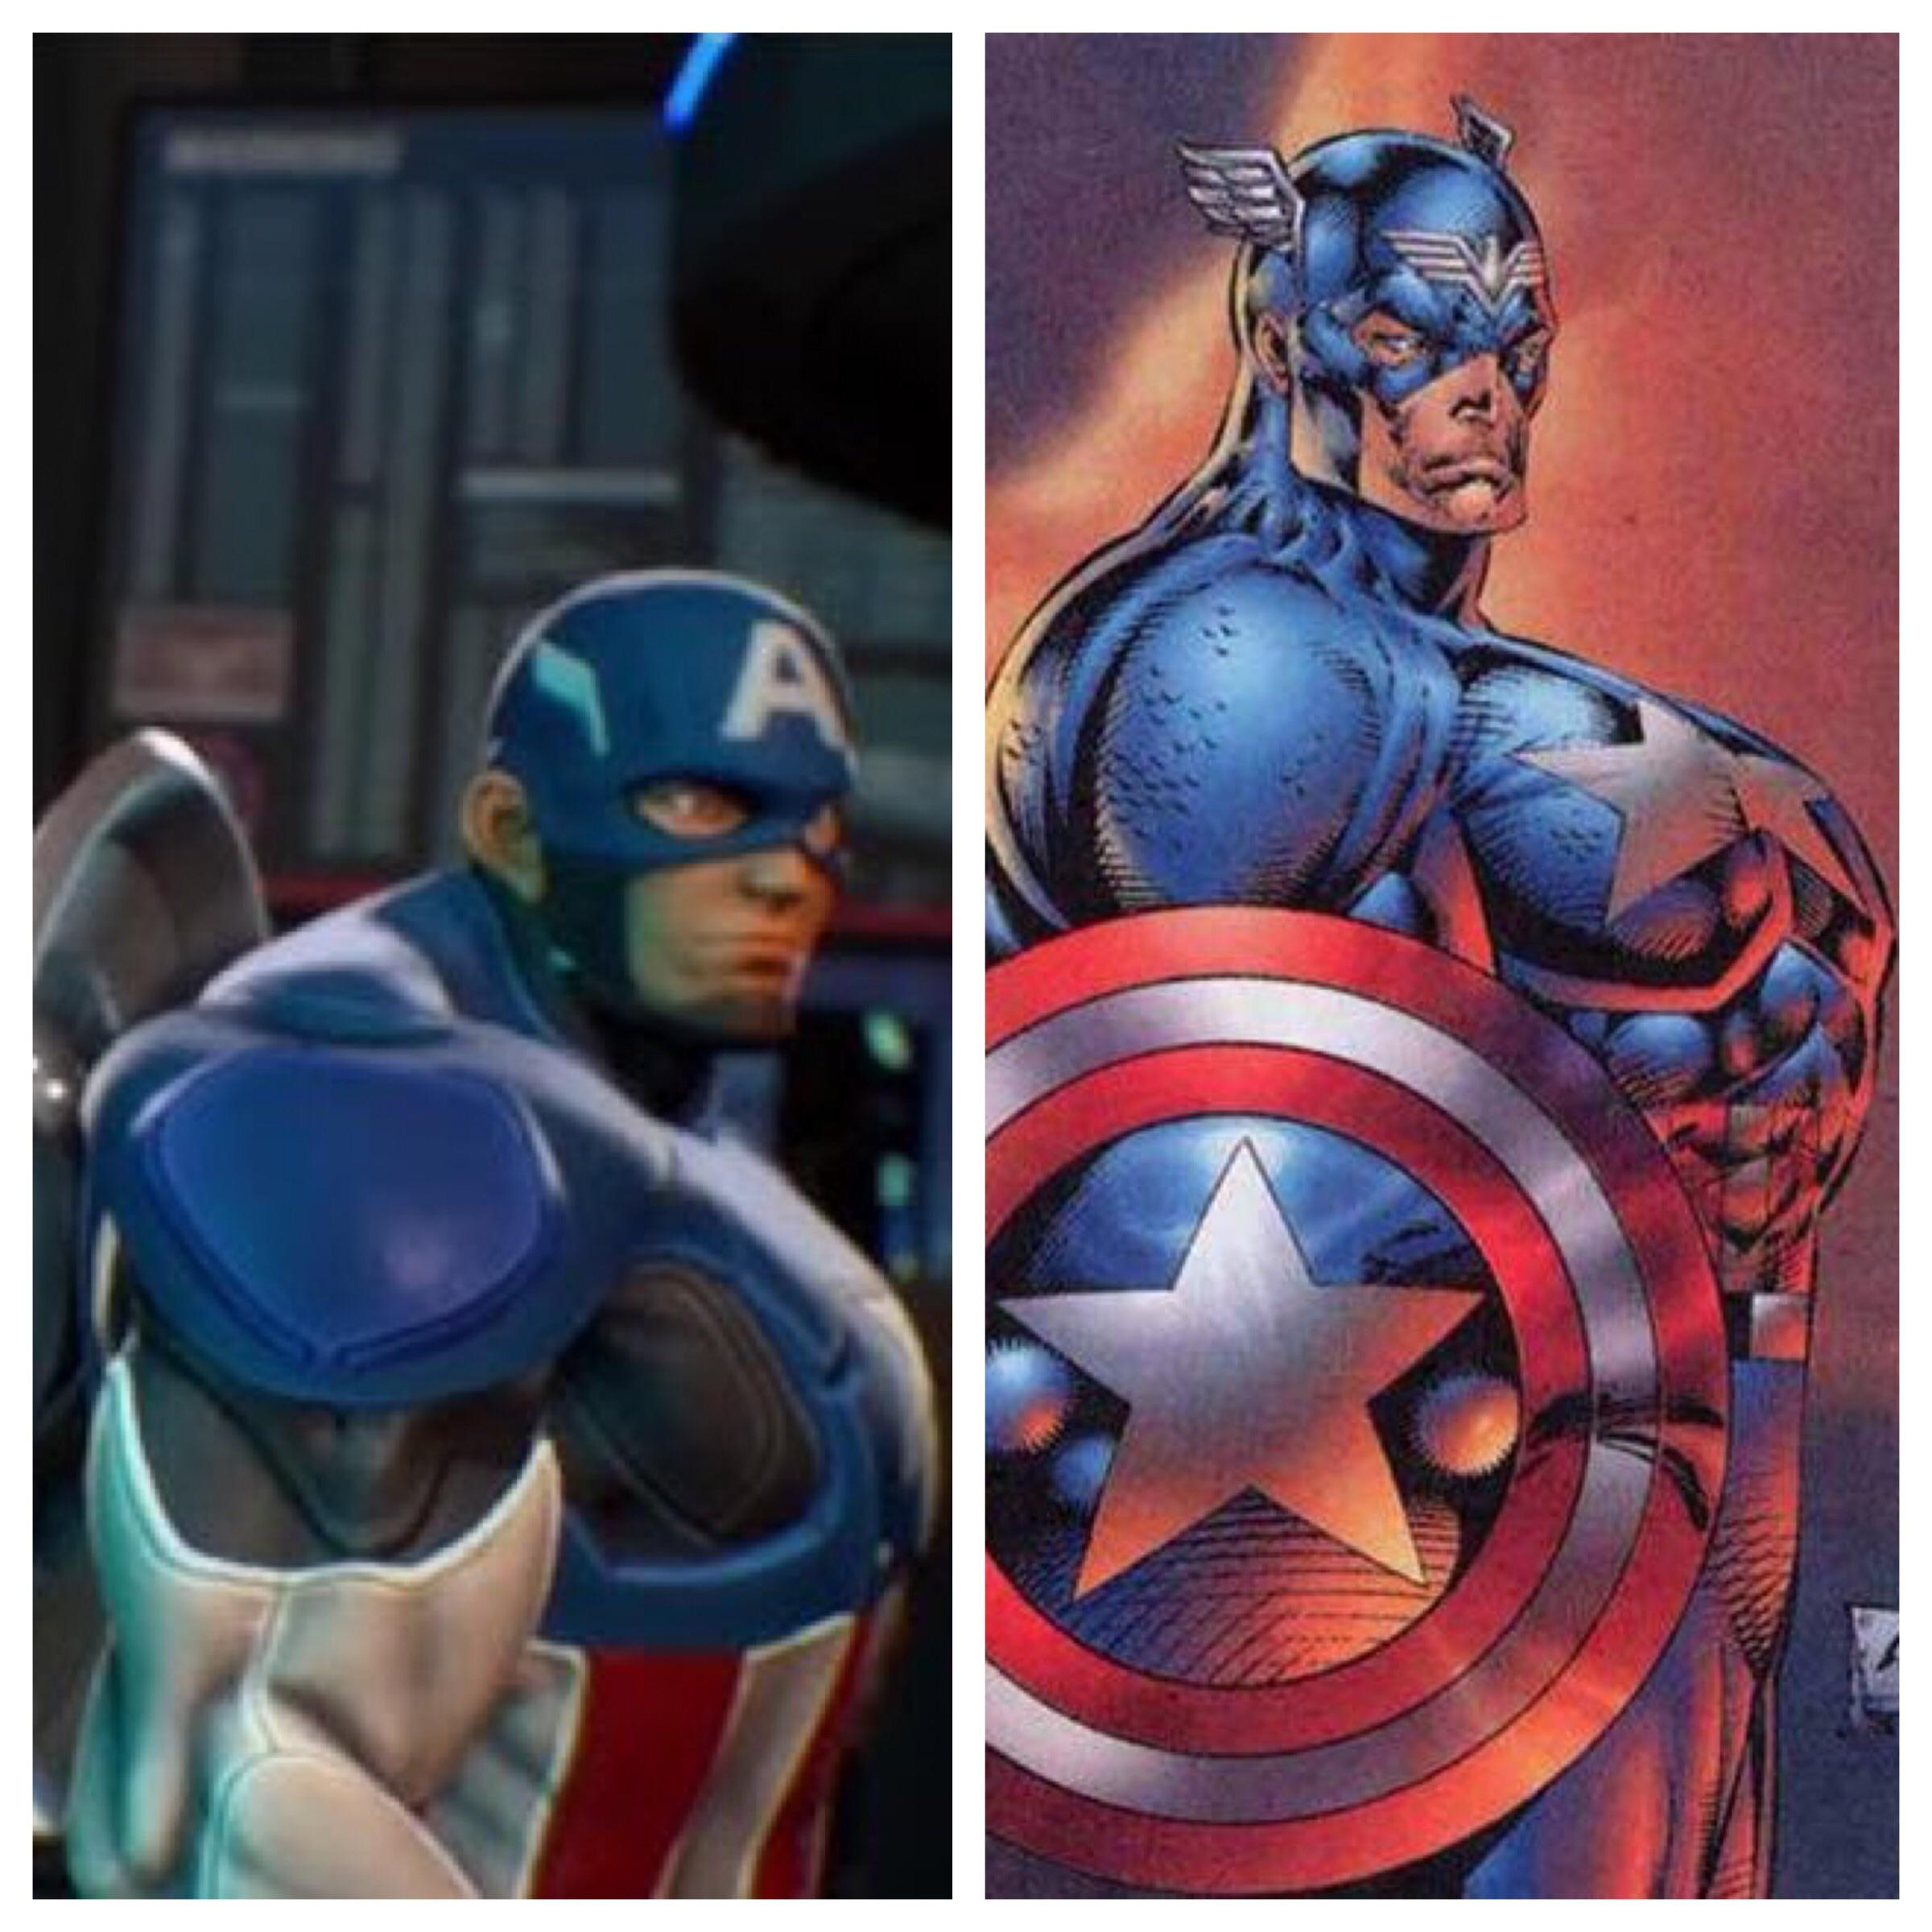 Comic Art Glad Capcom Based Their Captain America Model On Actual Comic Art